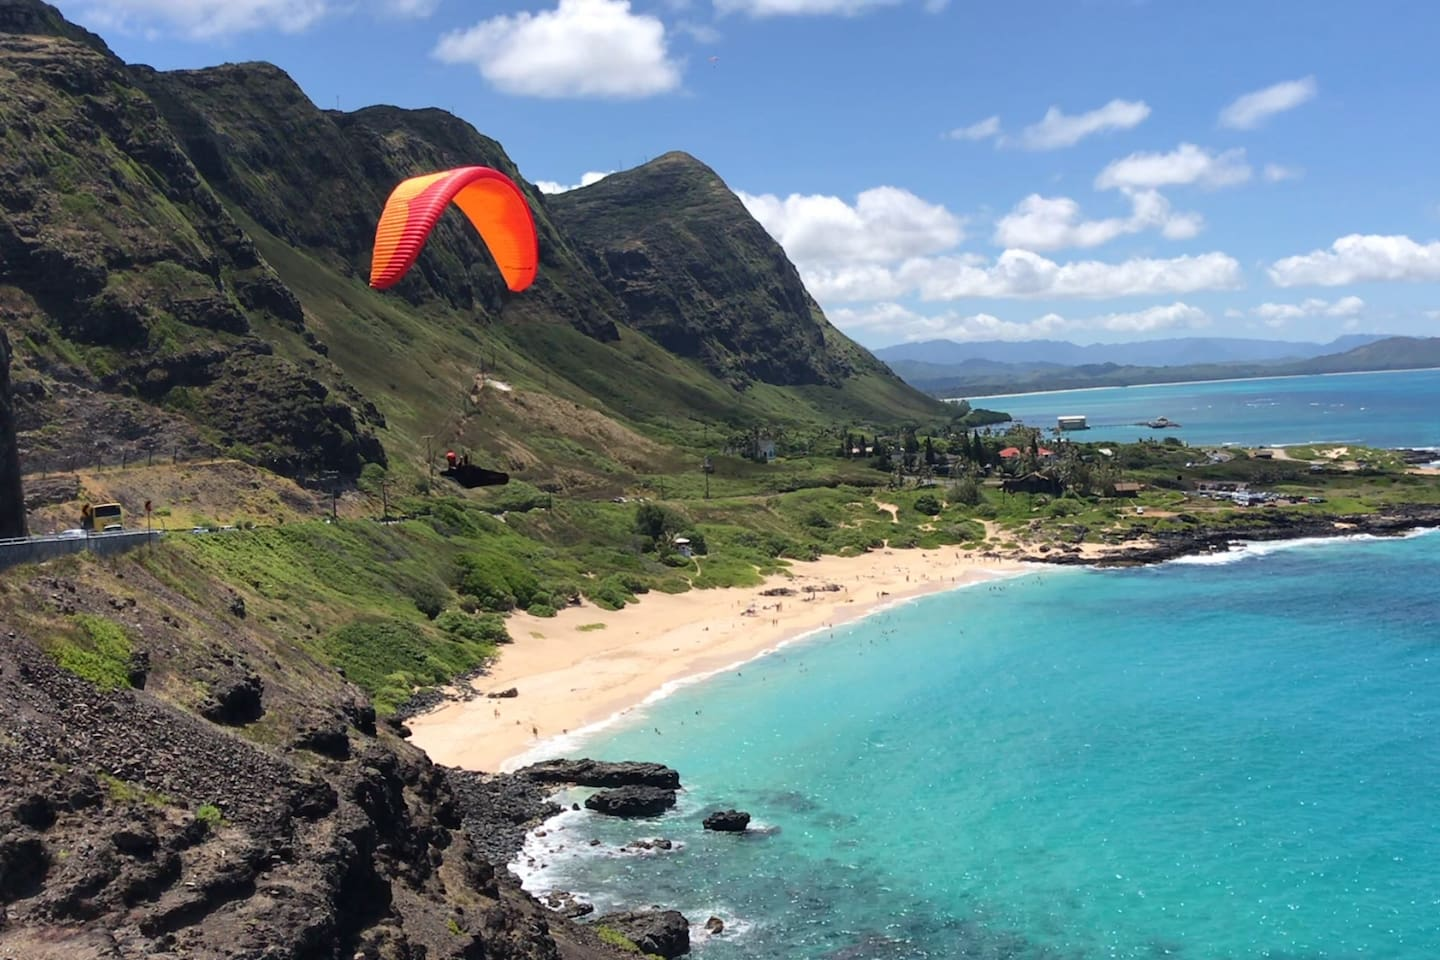 Soar with the paragliders